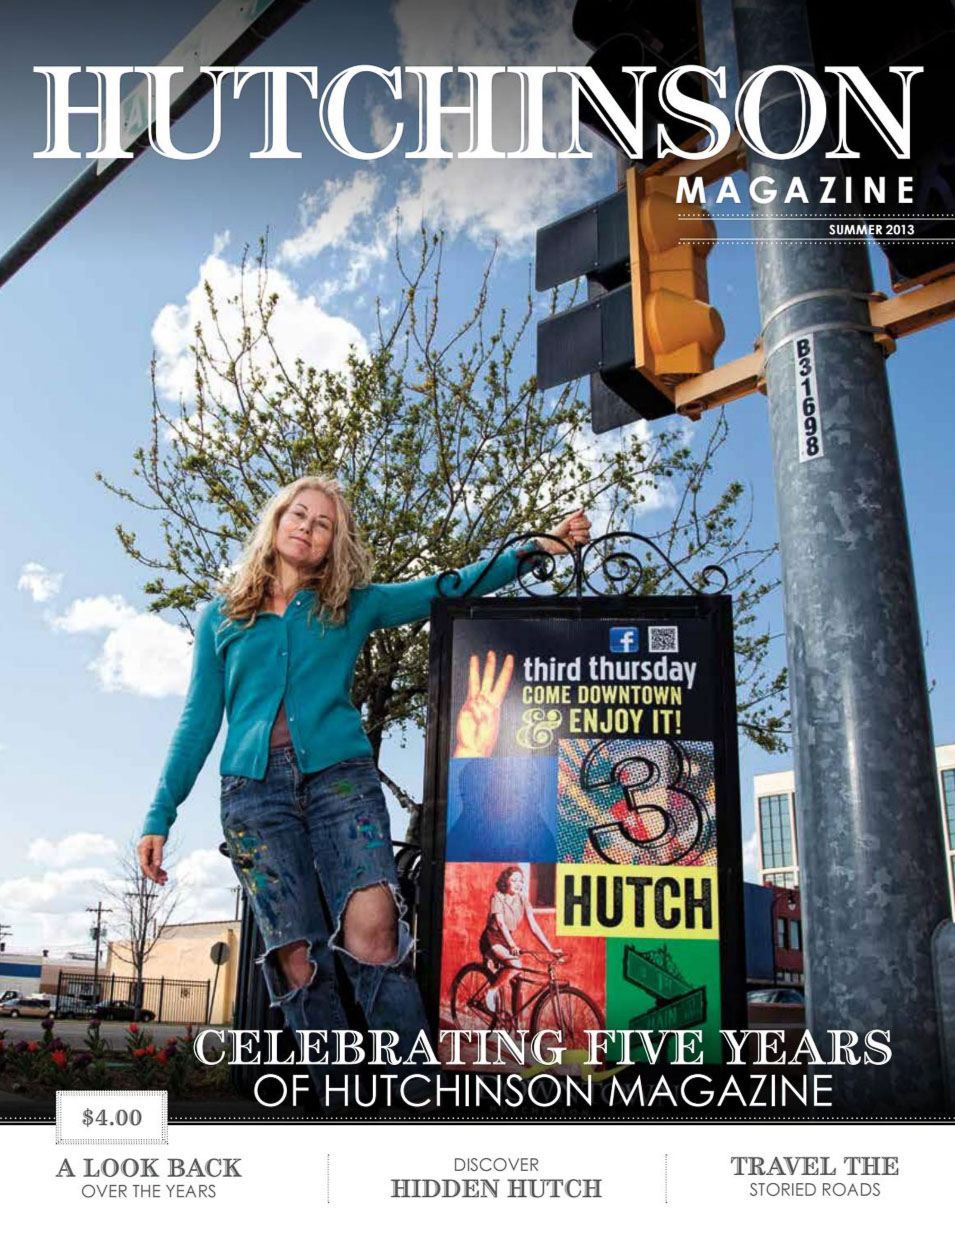 Hutchinson Magazine - Another Hutchinson Magazine article featuring Third Thursday on its cover as part of a celebration of businesses and events that have been a part of downtown Hutchinson for many years.I started Third Thursday in 2008, and have been organizing the event every month since the beginning.